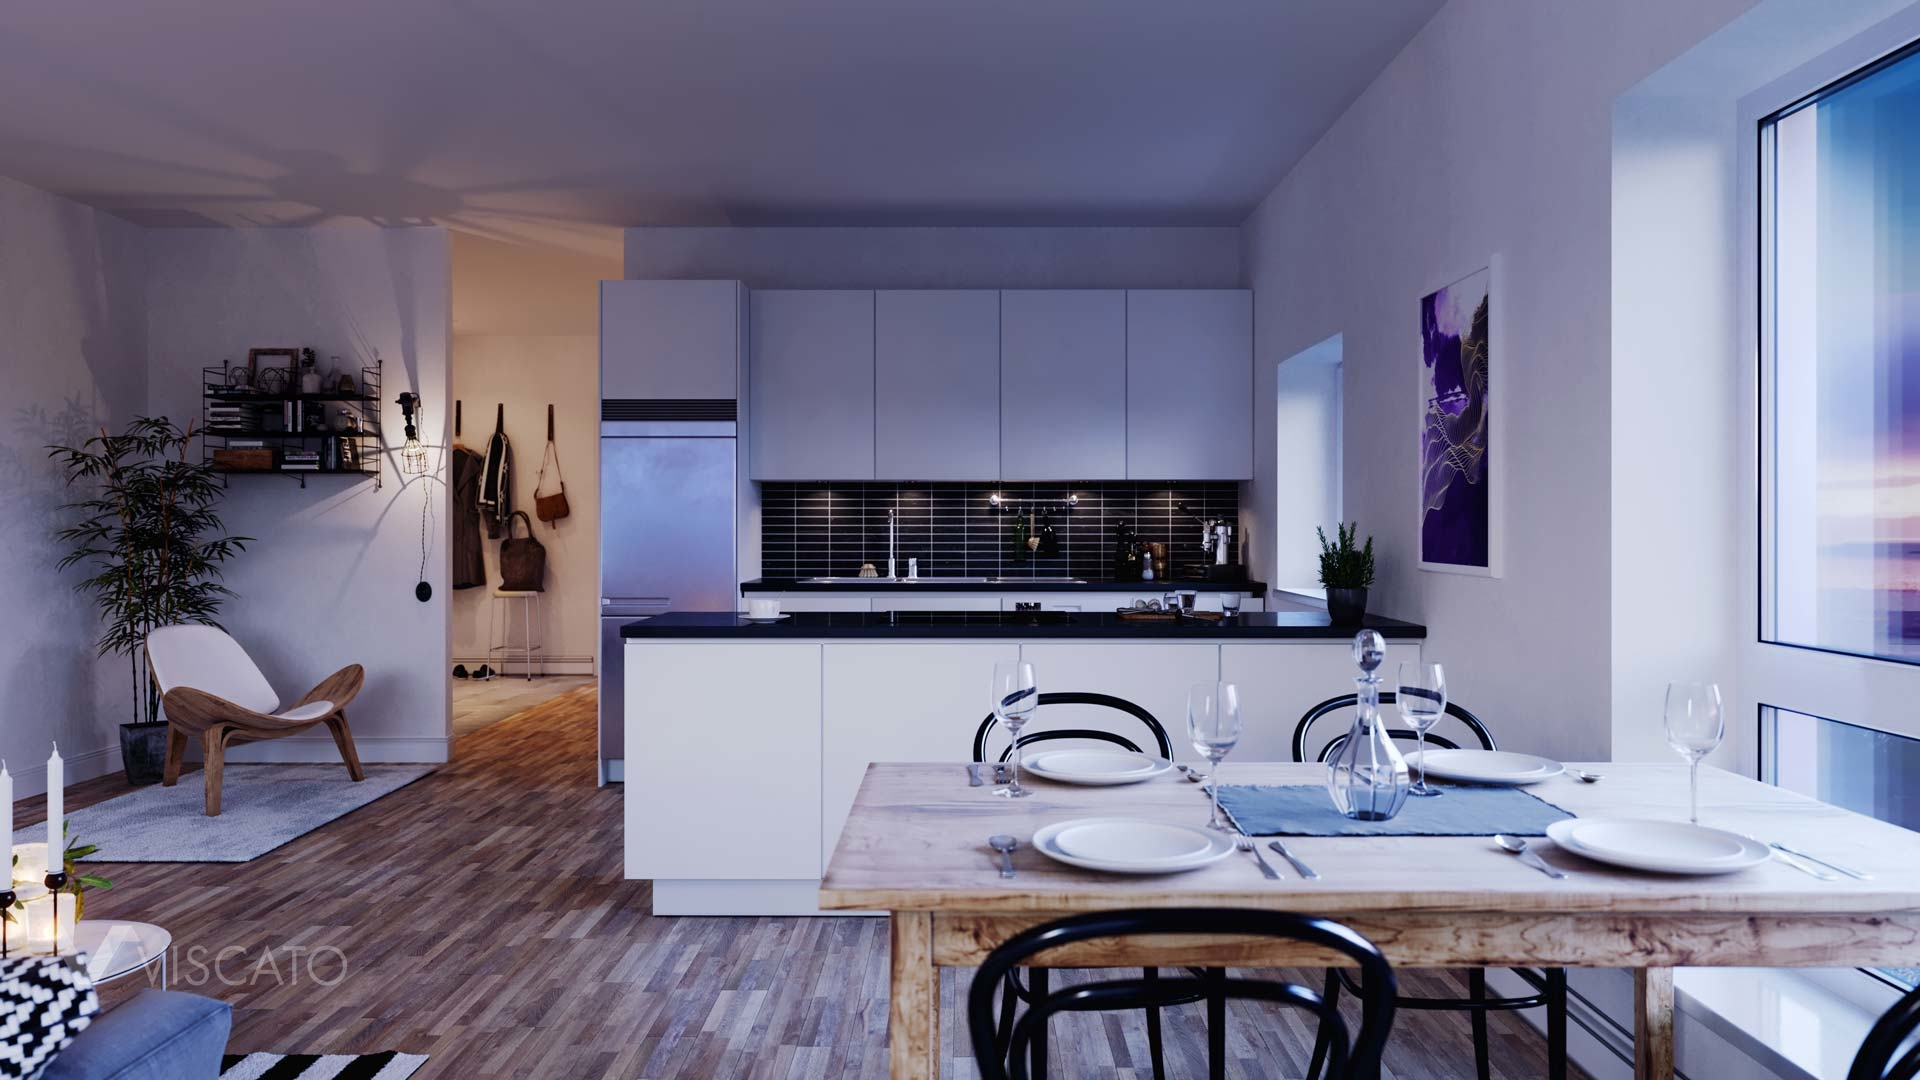 white kitchen with black working top, Viscato3D